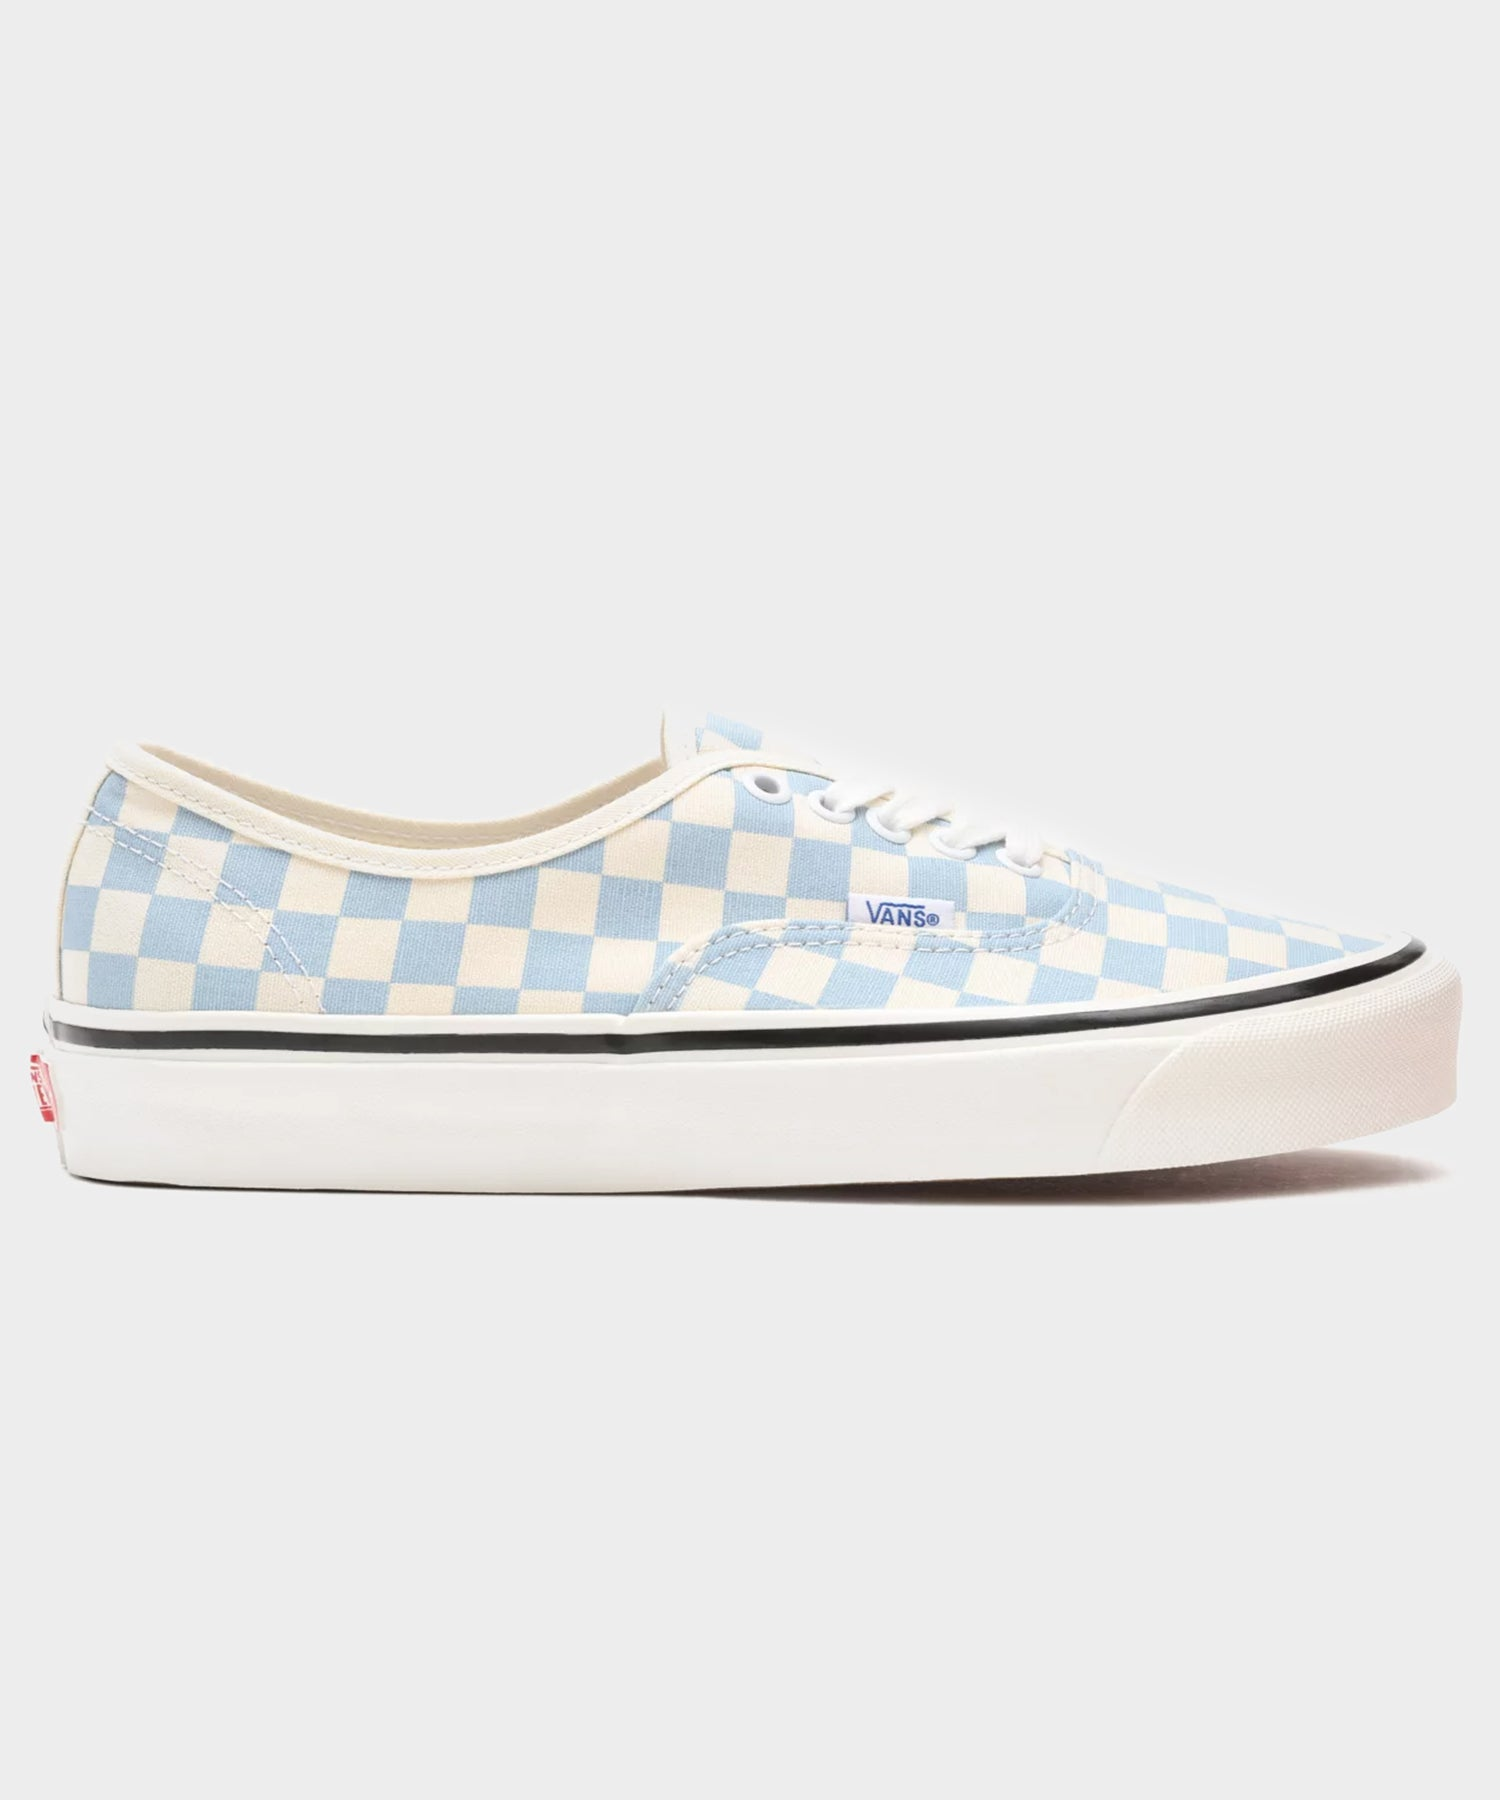 VANS ANAHEIM FACTORY AUTHENTIC 44 DX in BLUE CHECKERBOARD